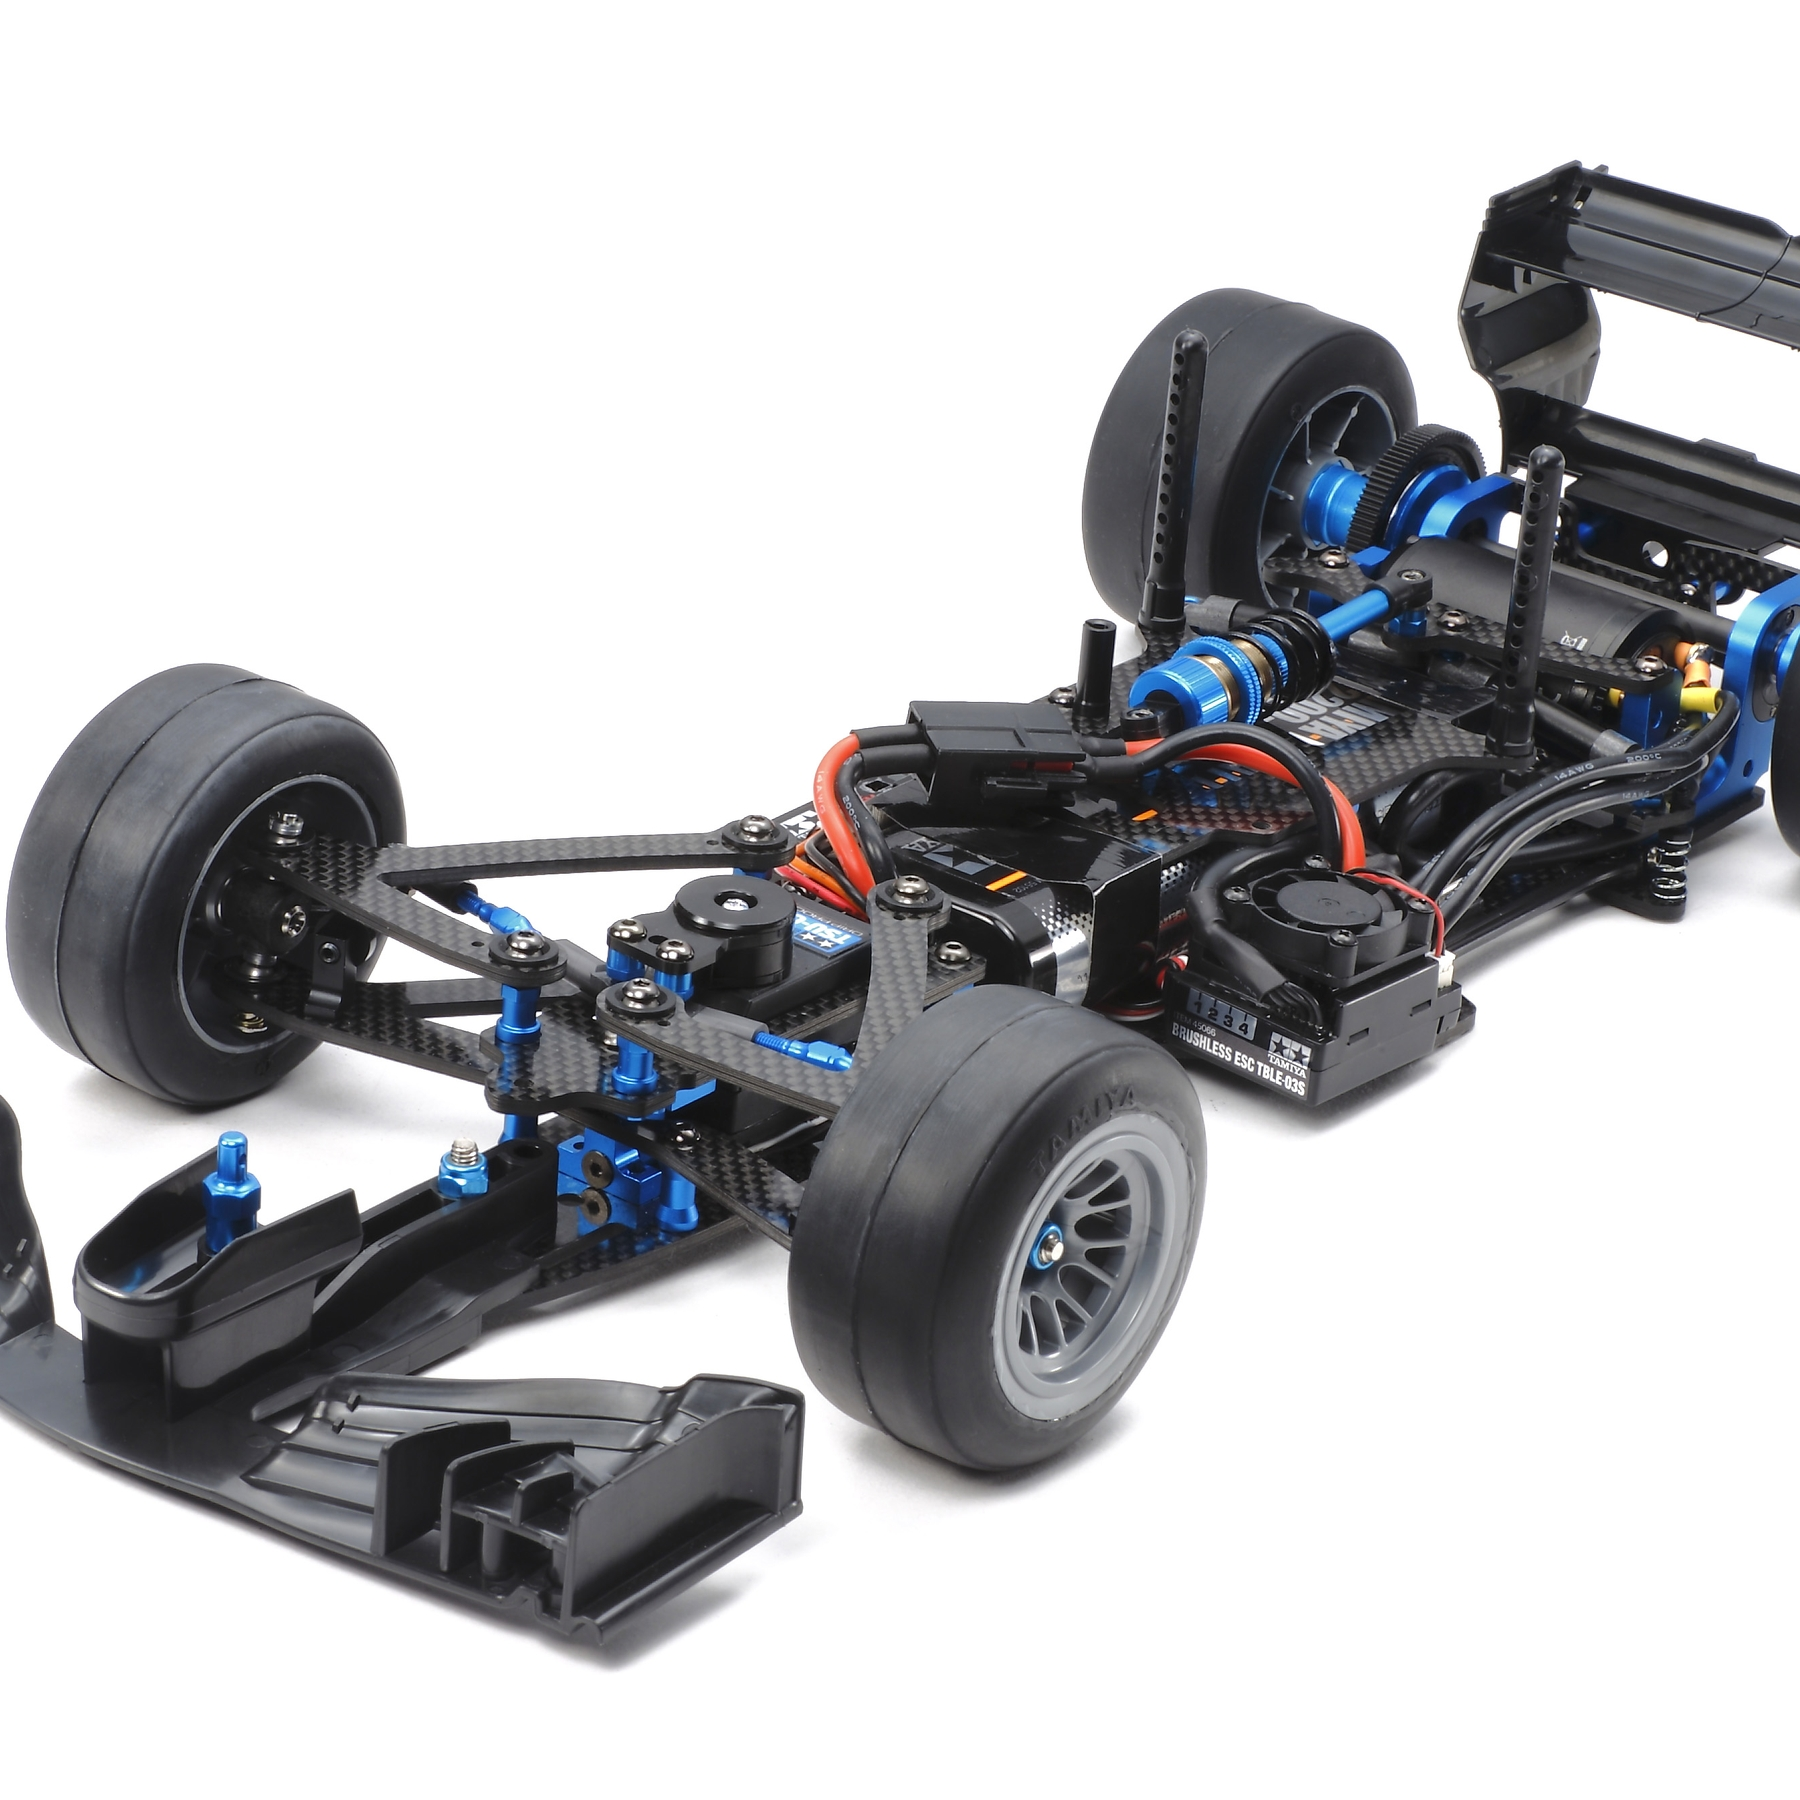 Rc Trf103 Chassis Kit